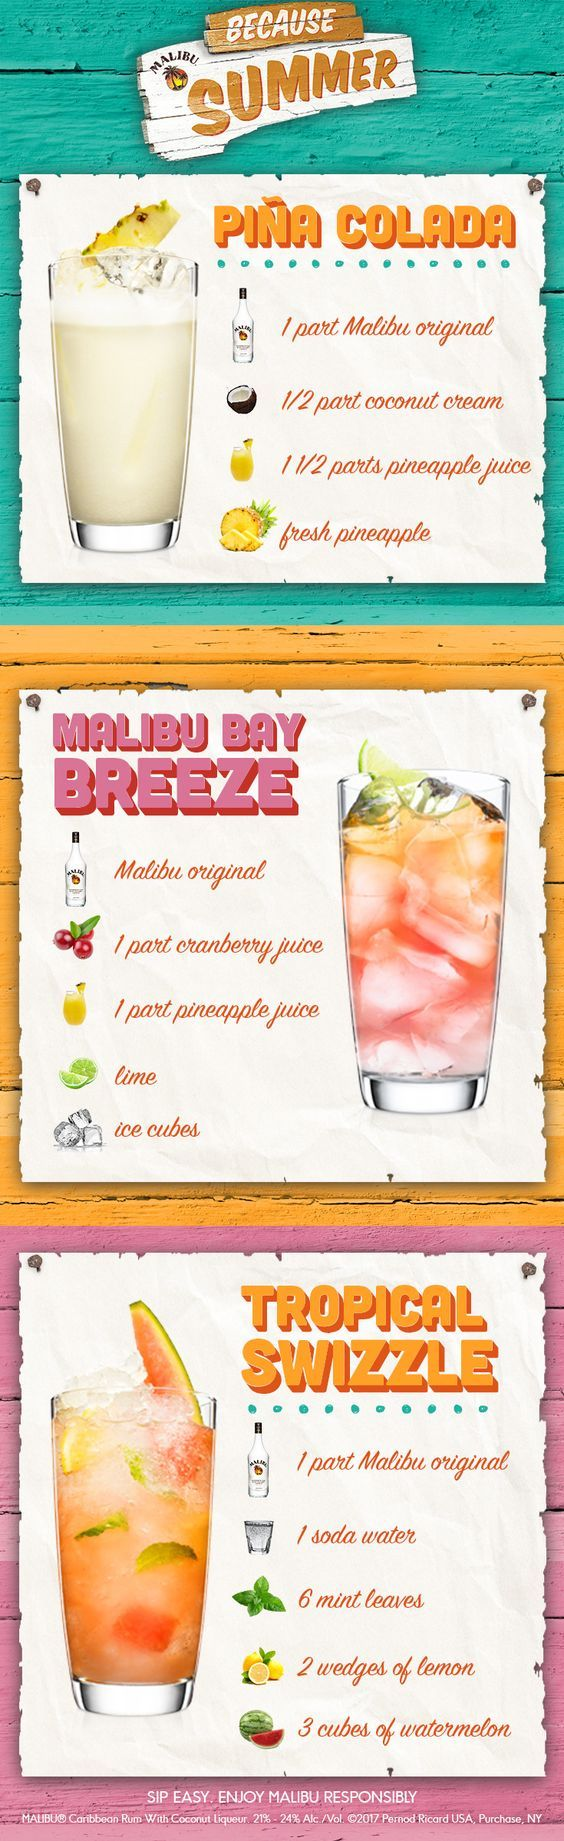 Looking for refreshing, easy to make rum recipes this Summer? Look no further, as these simple recipes will brighten up your summer. All you need is Malibu rum, fresh simple ingredients, and friends to bring the island to you. Easy to make, easy to enjoy! Click for the full recipes, and more!